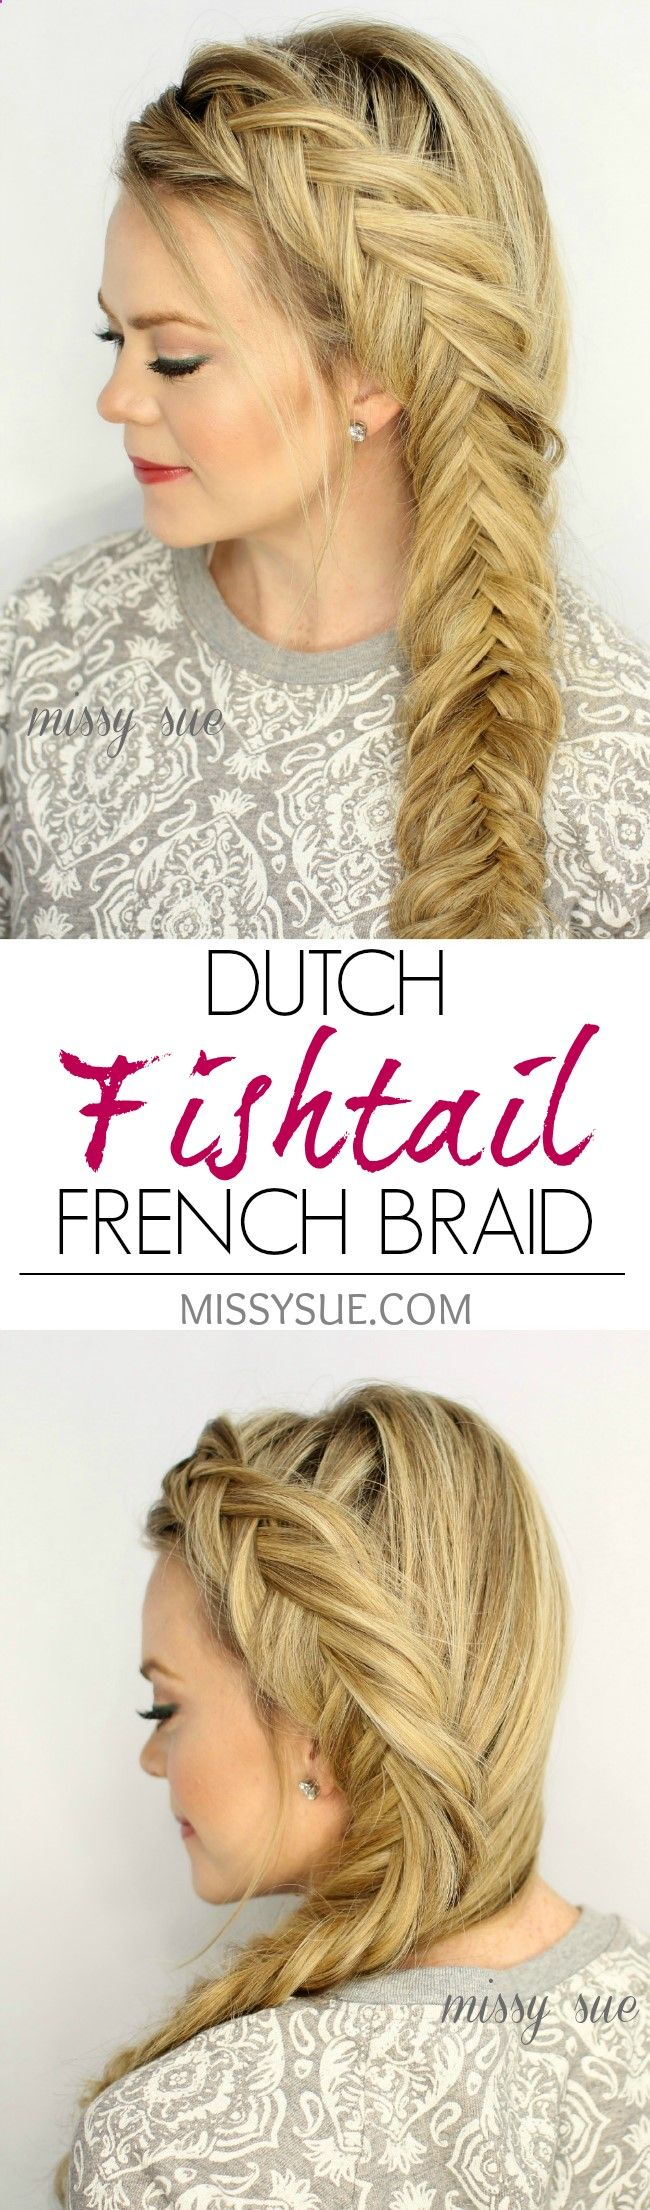 Dutch Fishtail French Braid More